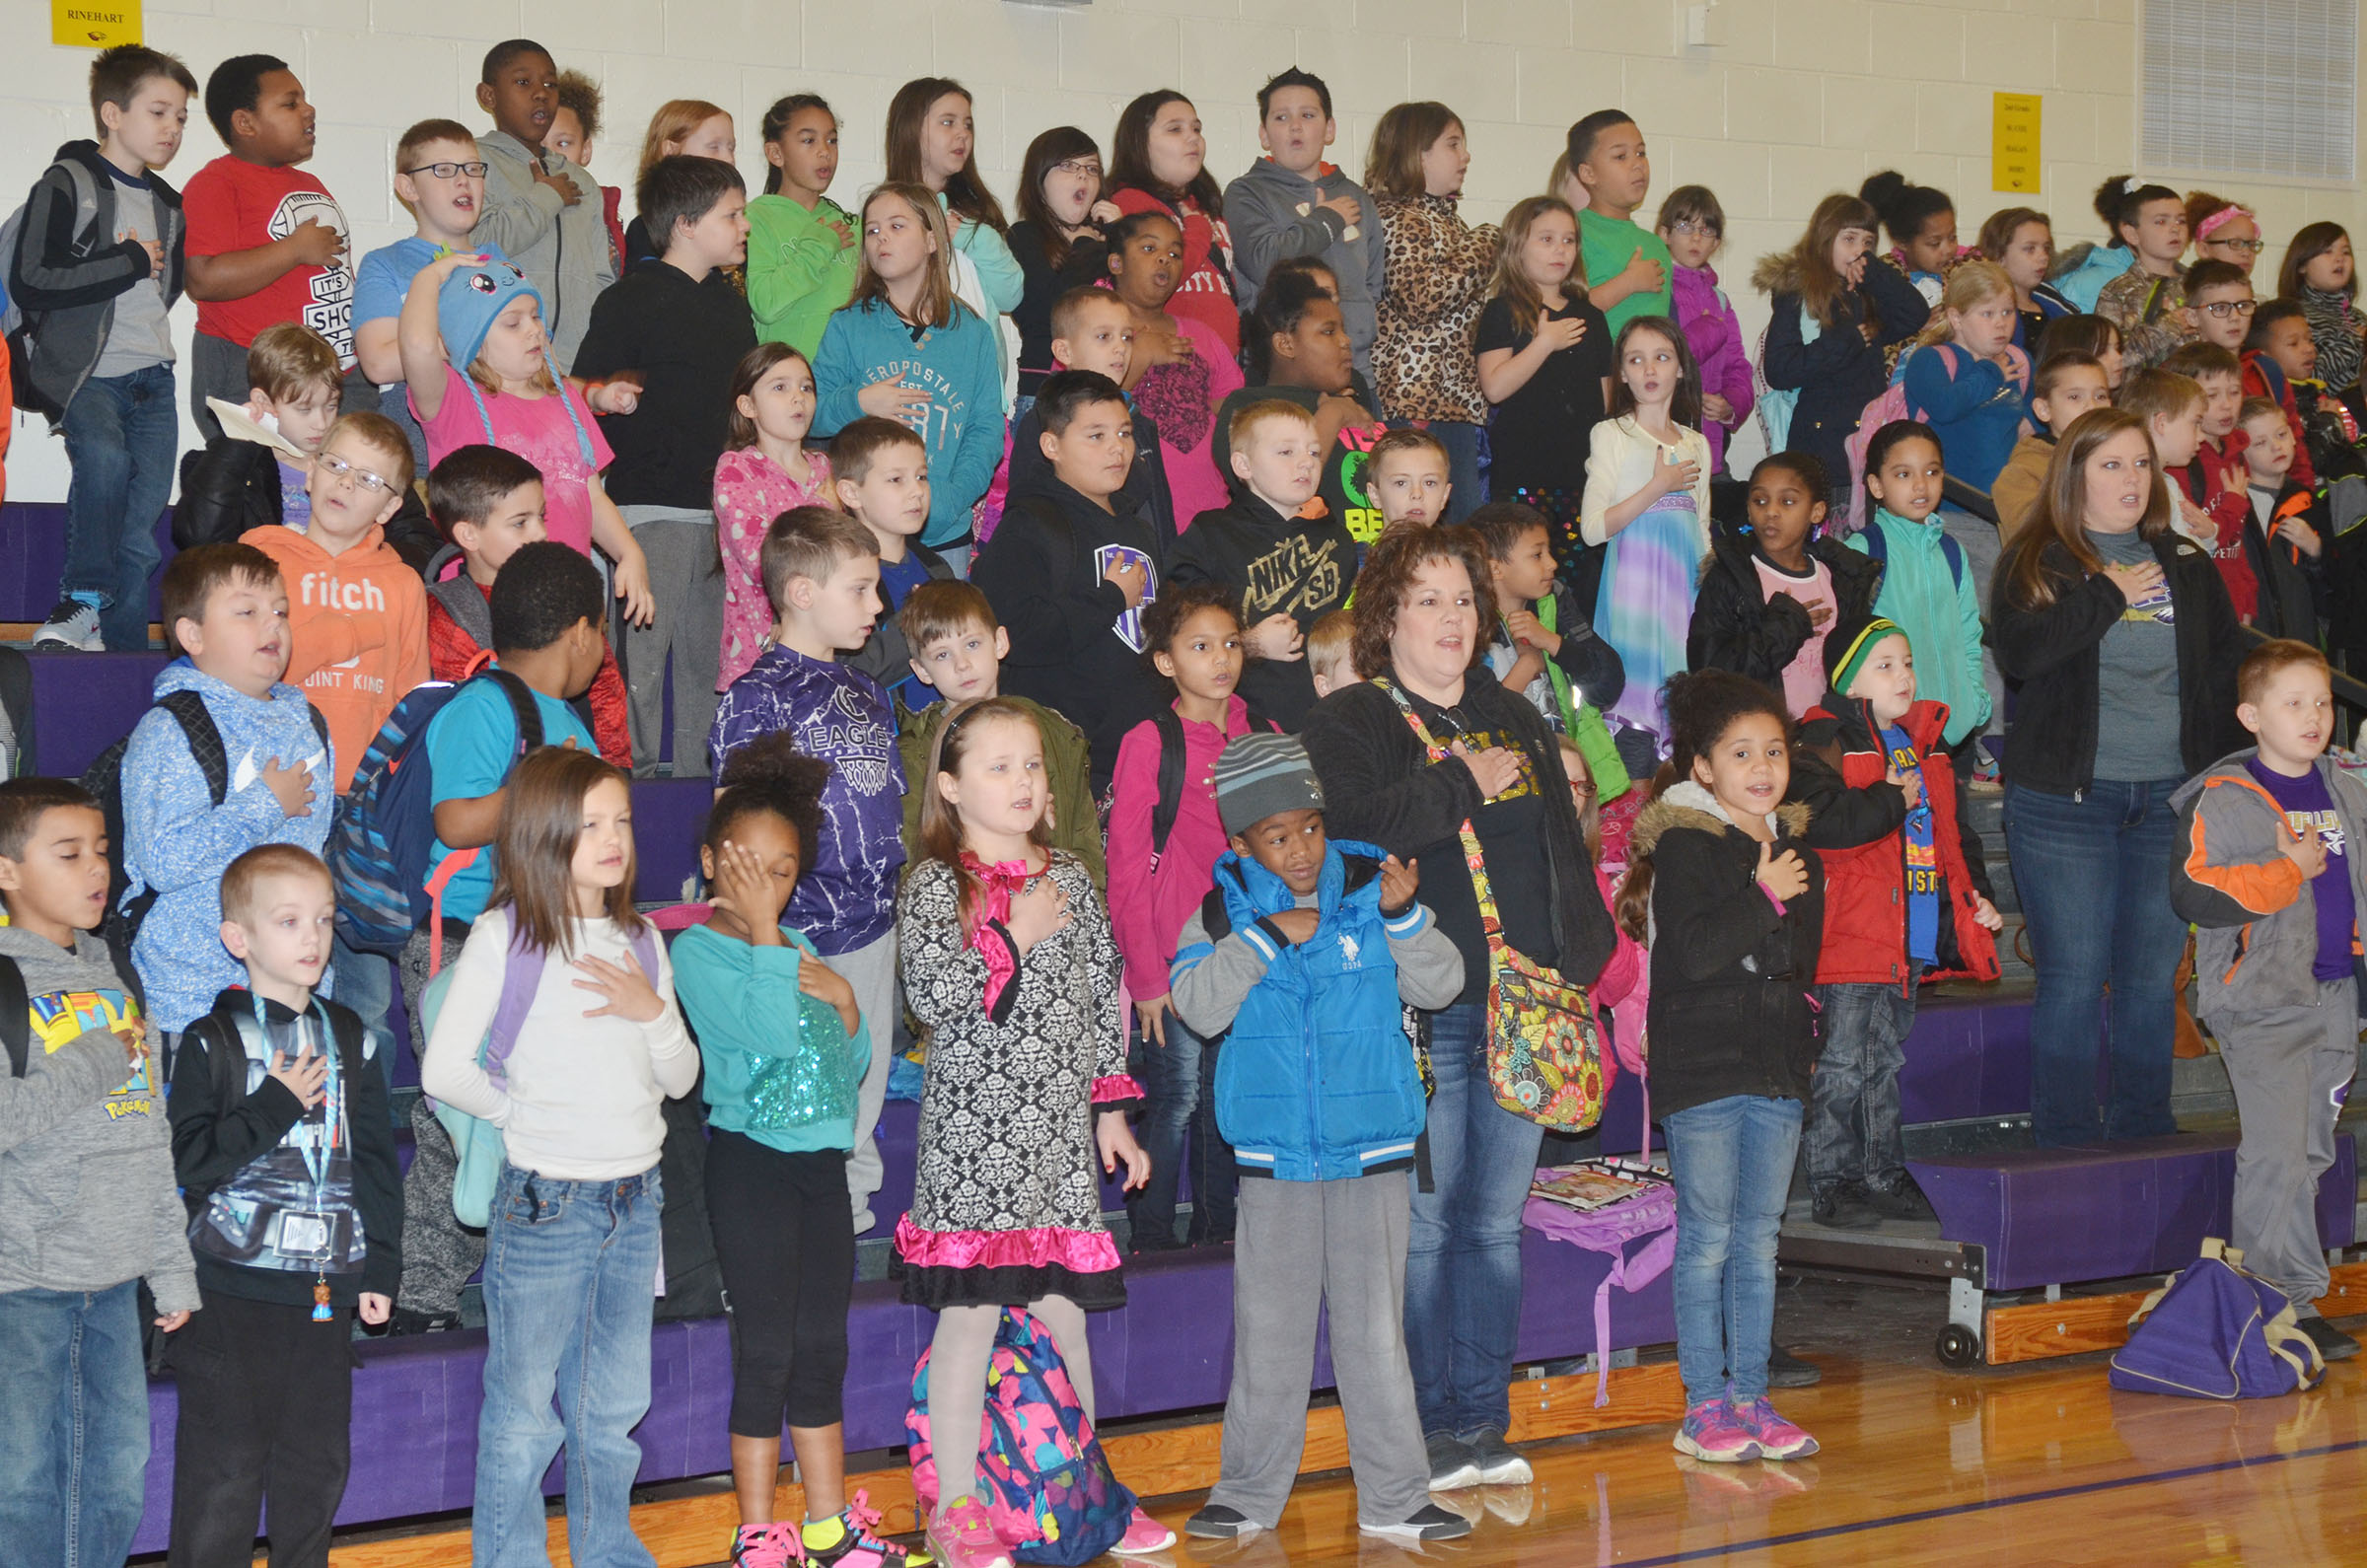 CES students gather together for an assembly in their newly renovated gymnasium.